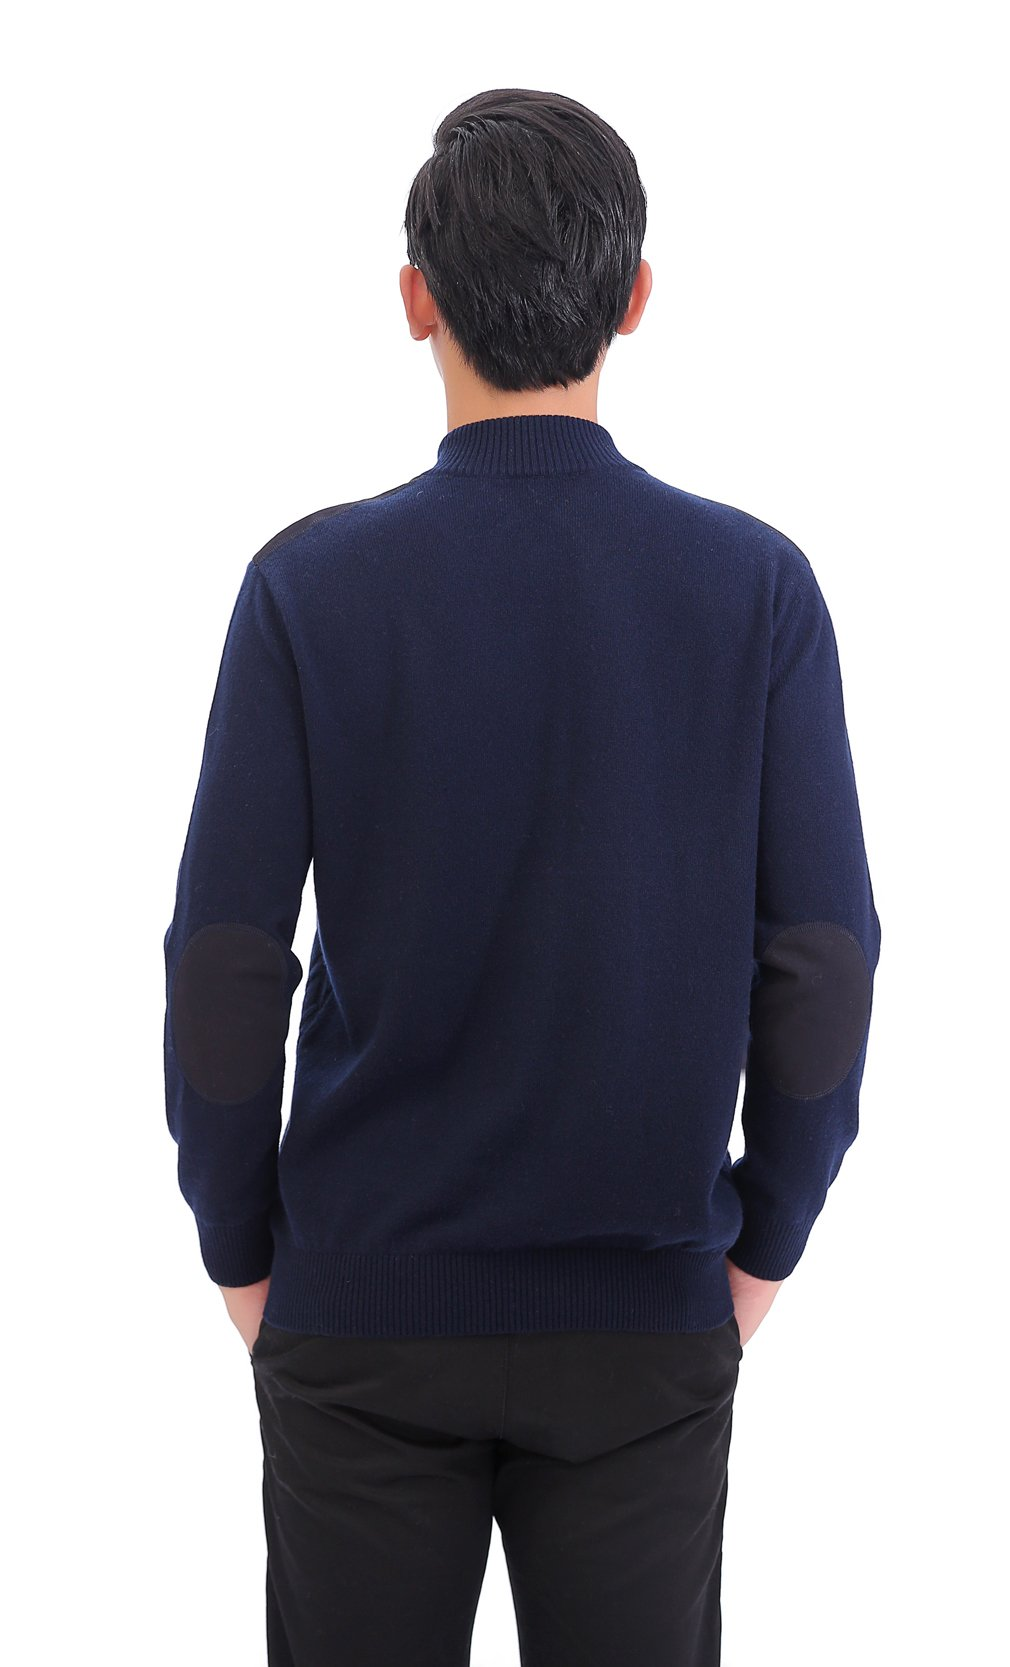 METERDE Men's Knitwear Half Zip Business Casual Cashmere Pullover Sweater X by Cashmere DX (Image #5)